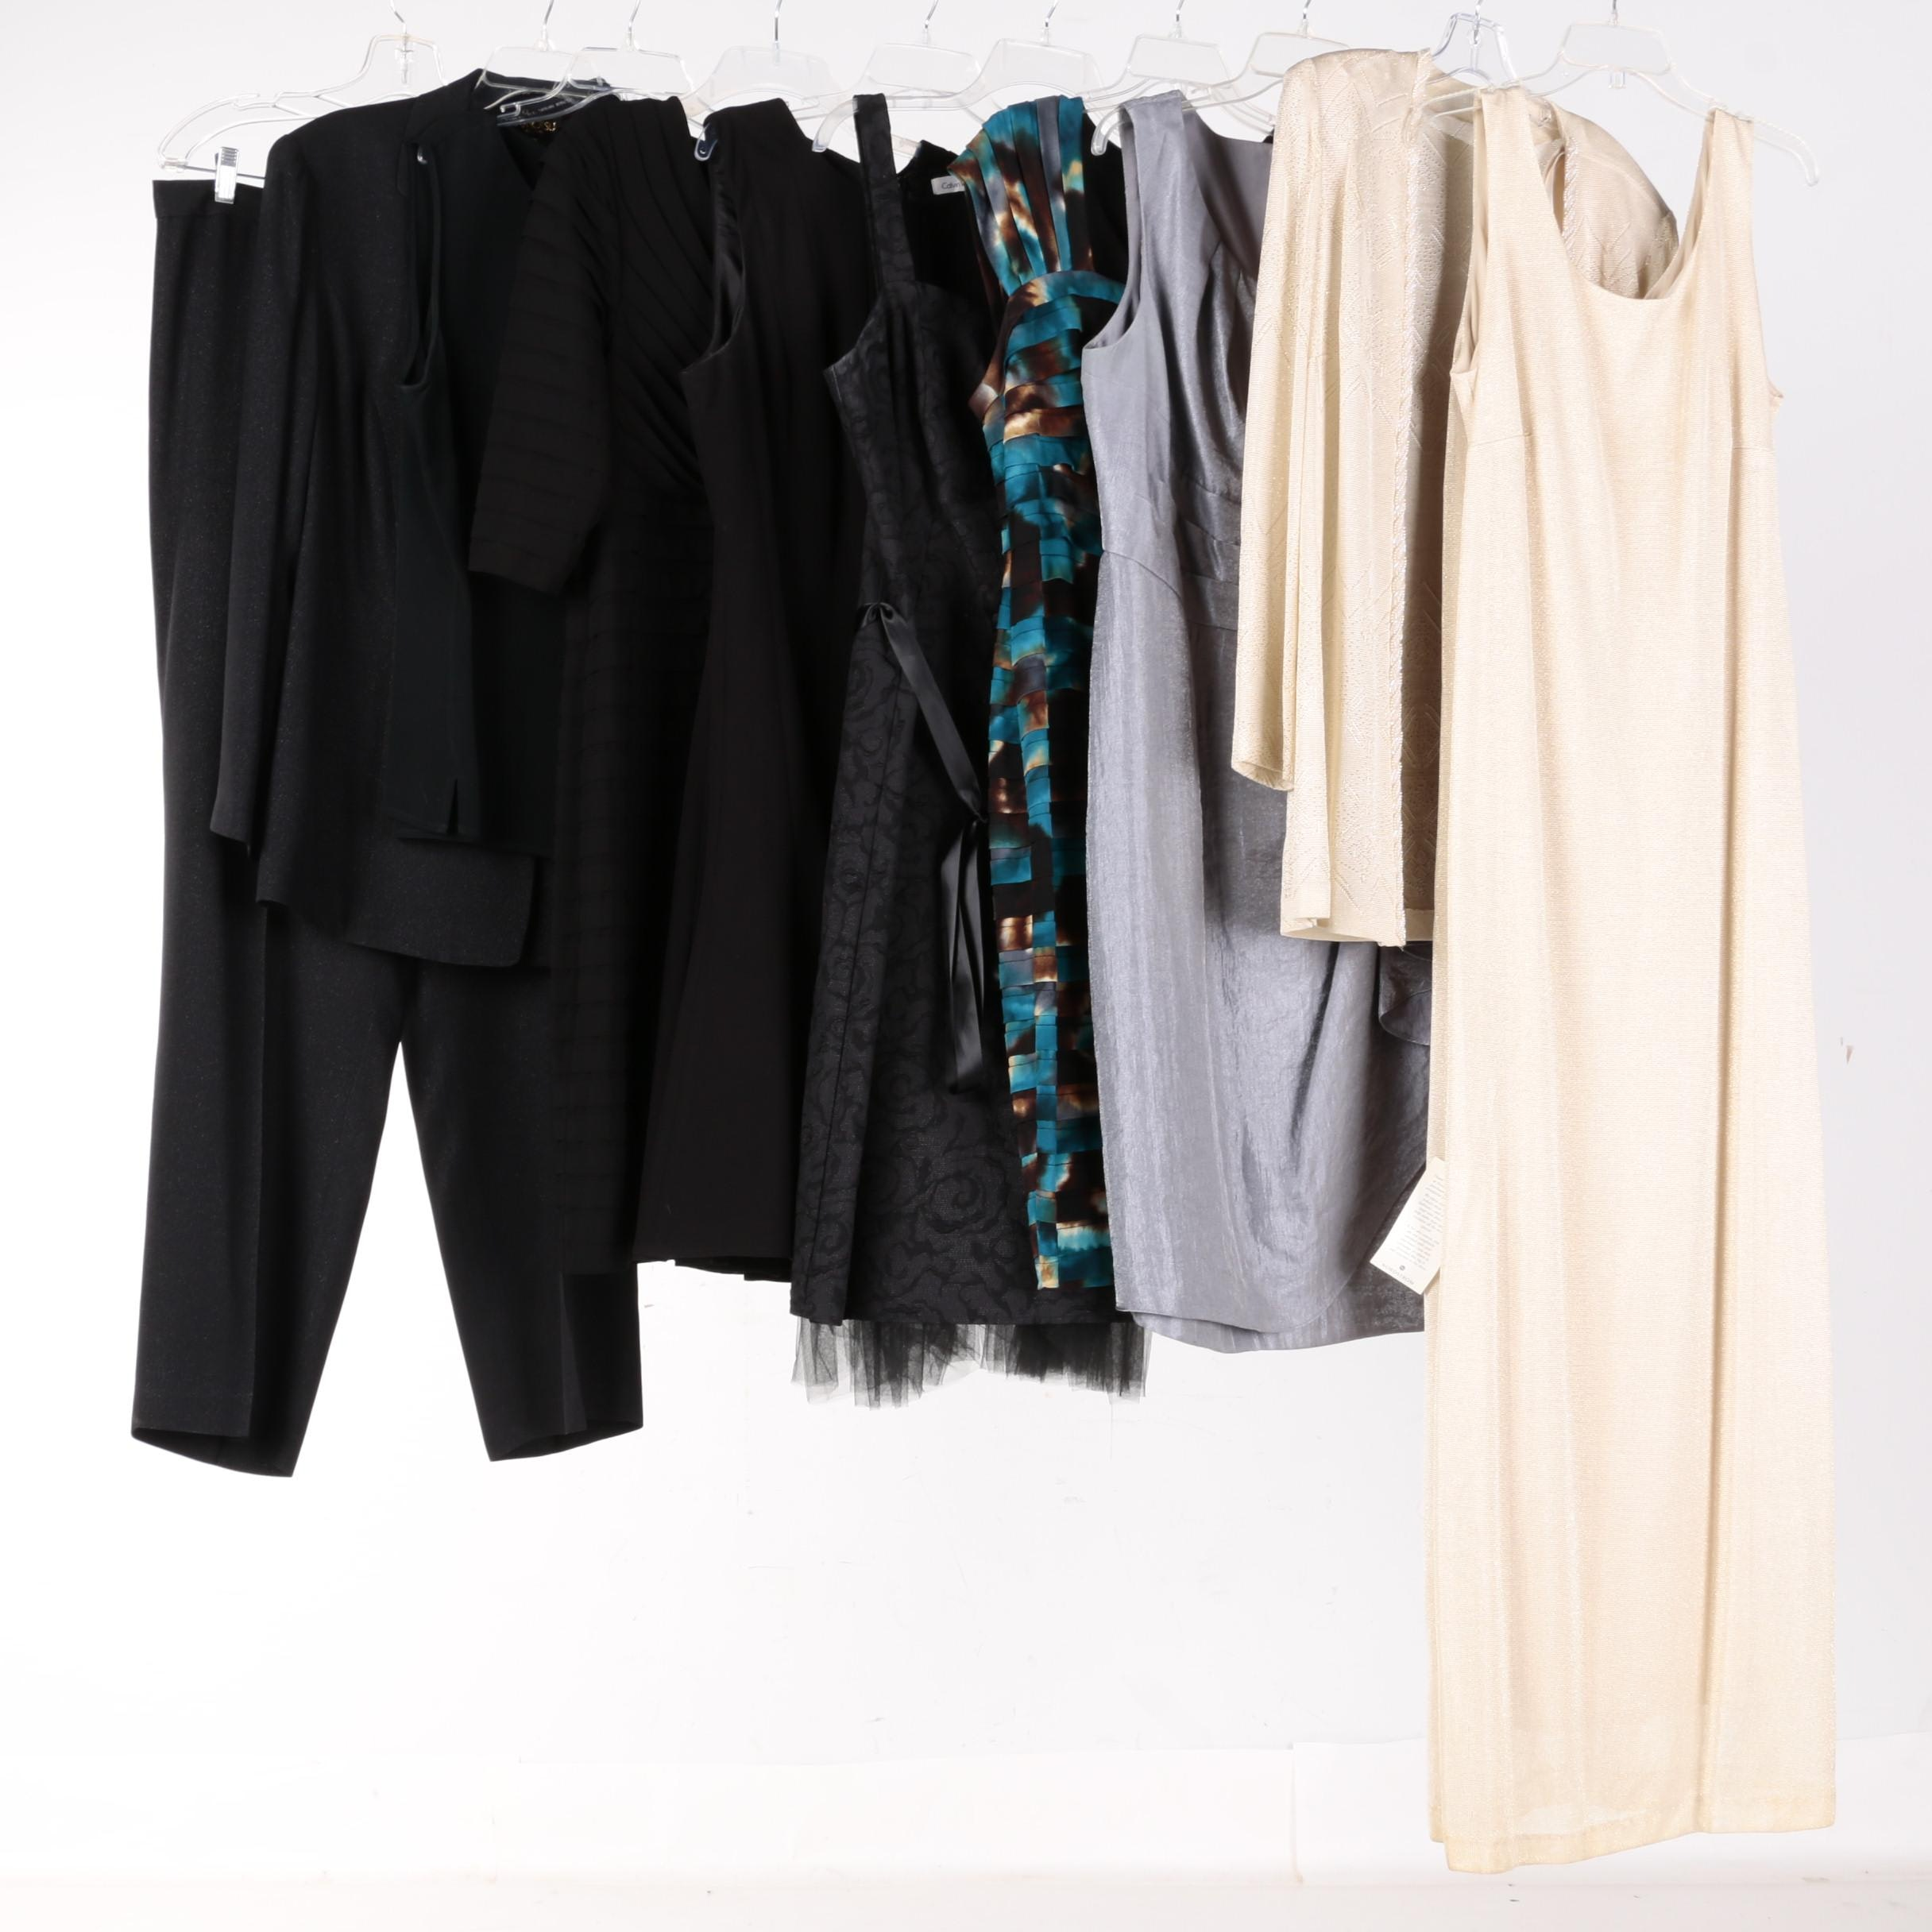 Women's Separates and Dresses Including Calvin Klein and Alex Evenings